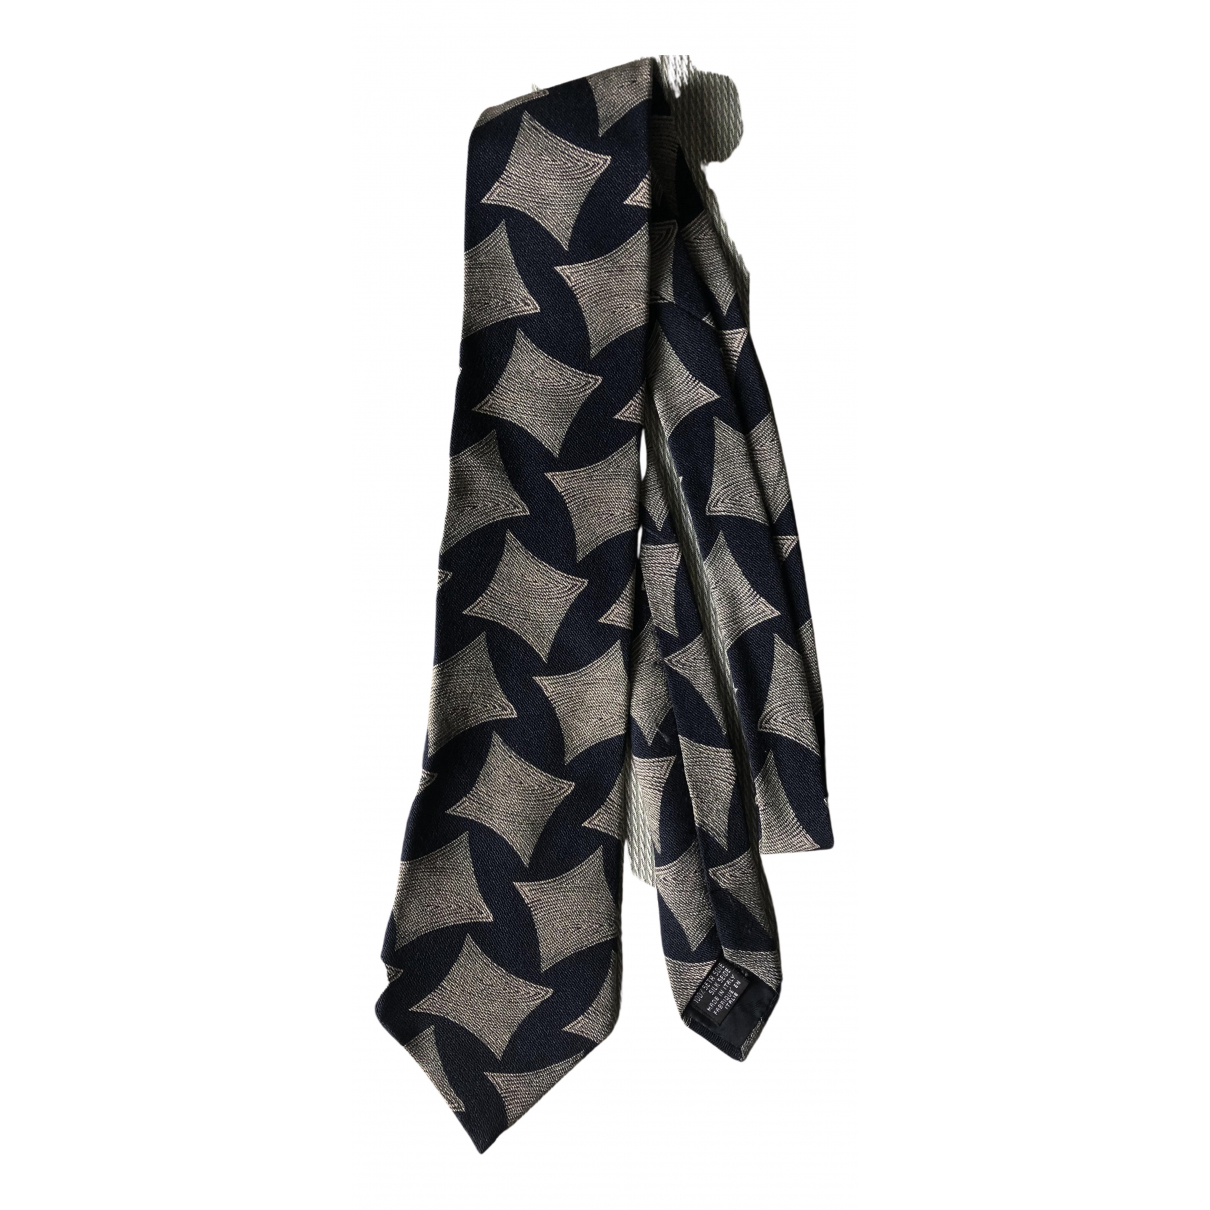 Emporio Armani N Blue Silk Ties for Men N